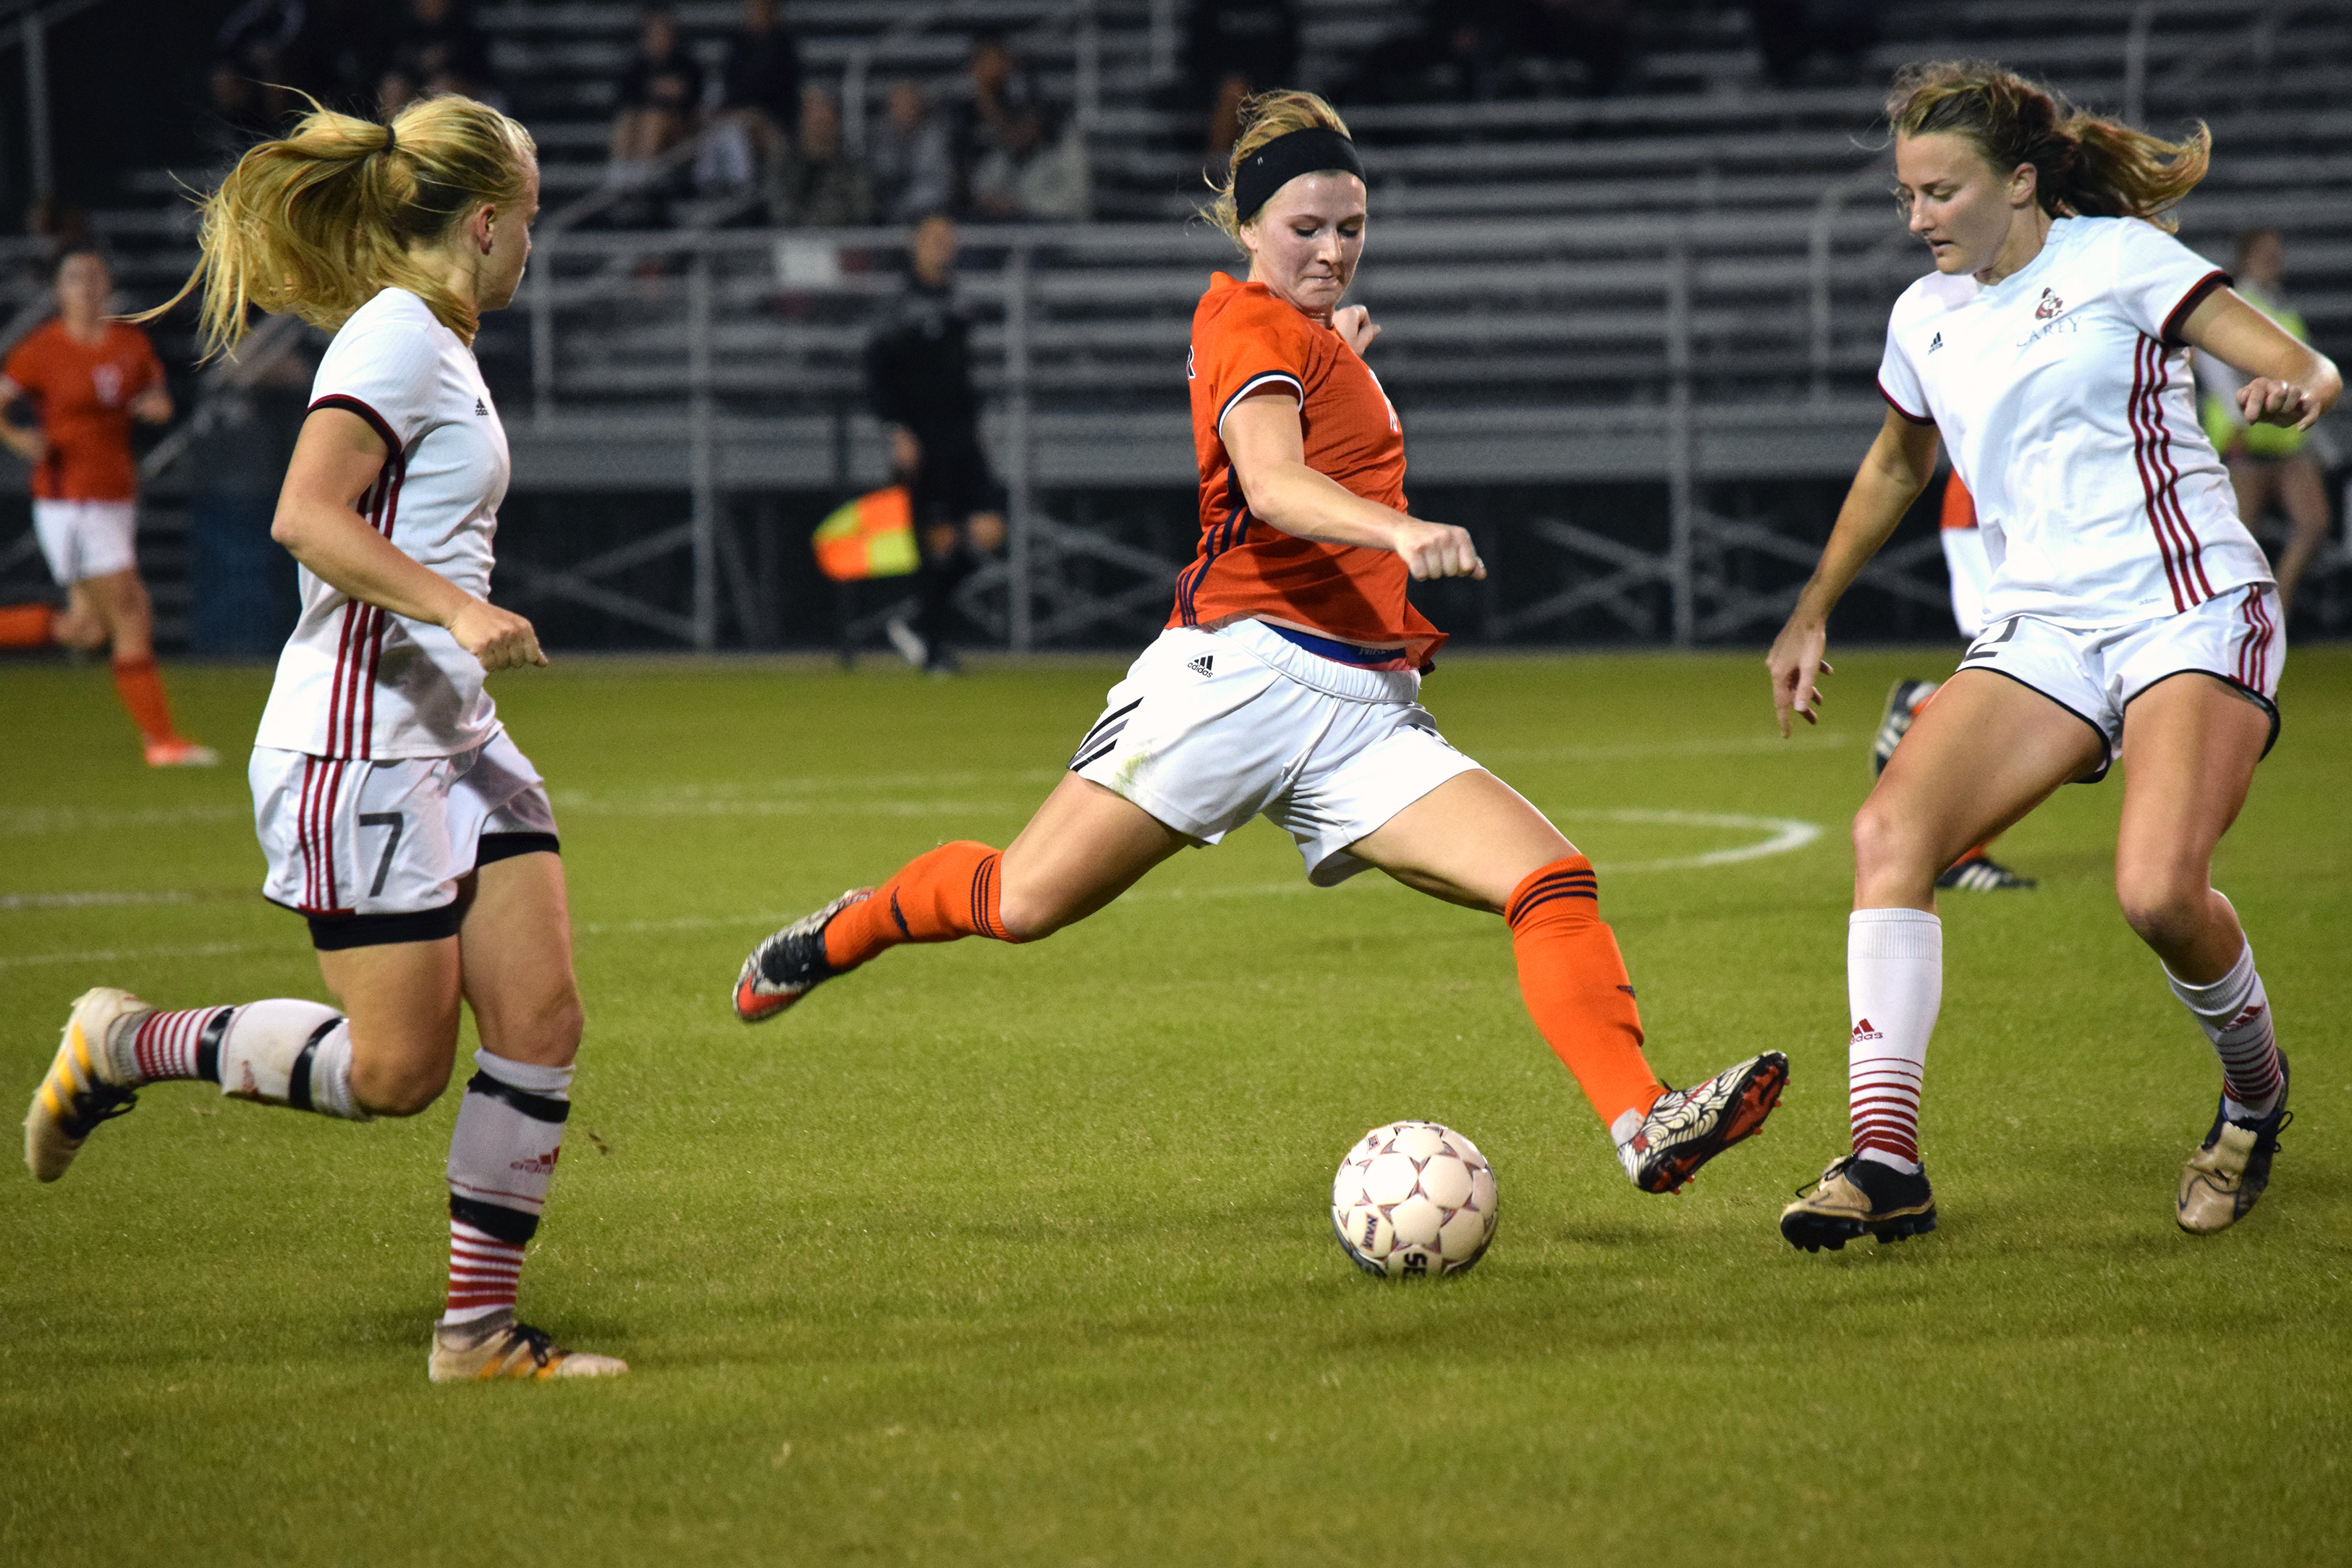 Senior Krista Hooper led the offensive attack for the Wildcats on Monday with five shots in Baker's 2-1 upset over No. 4 William Carey. Courtesy of Randy Speer